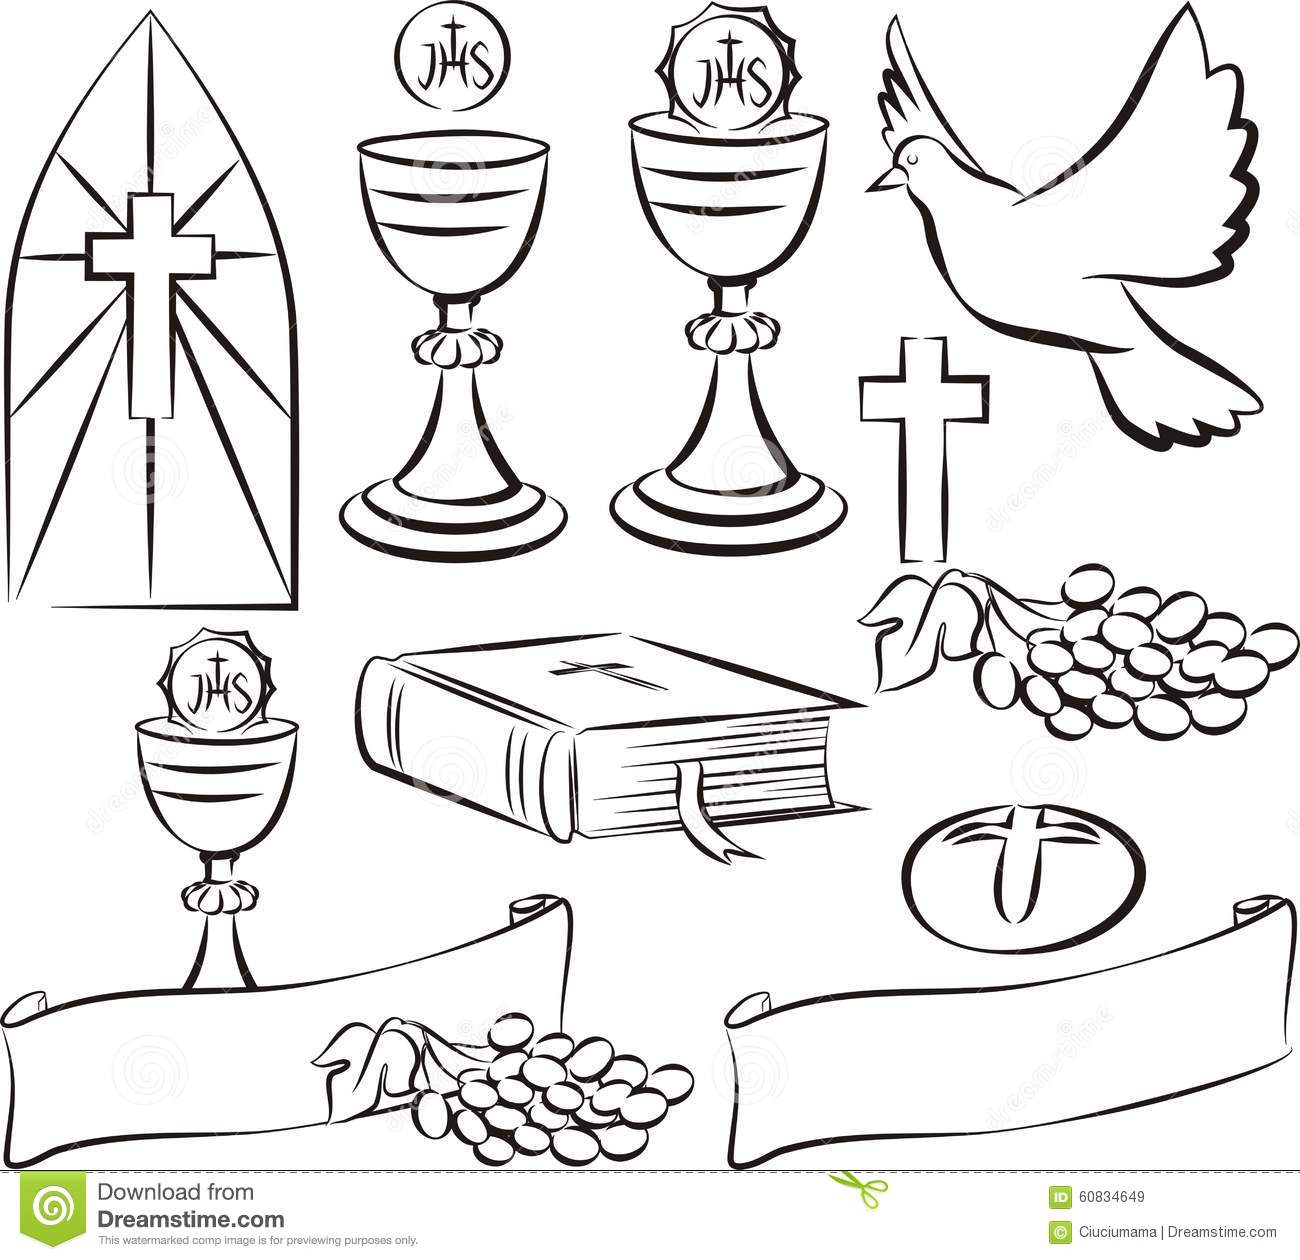 Holy communion vector symbols stock vector illustration of signs holy communion vector symbols buycottarizona Image collections